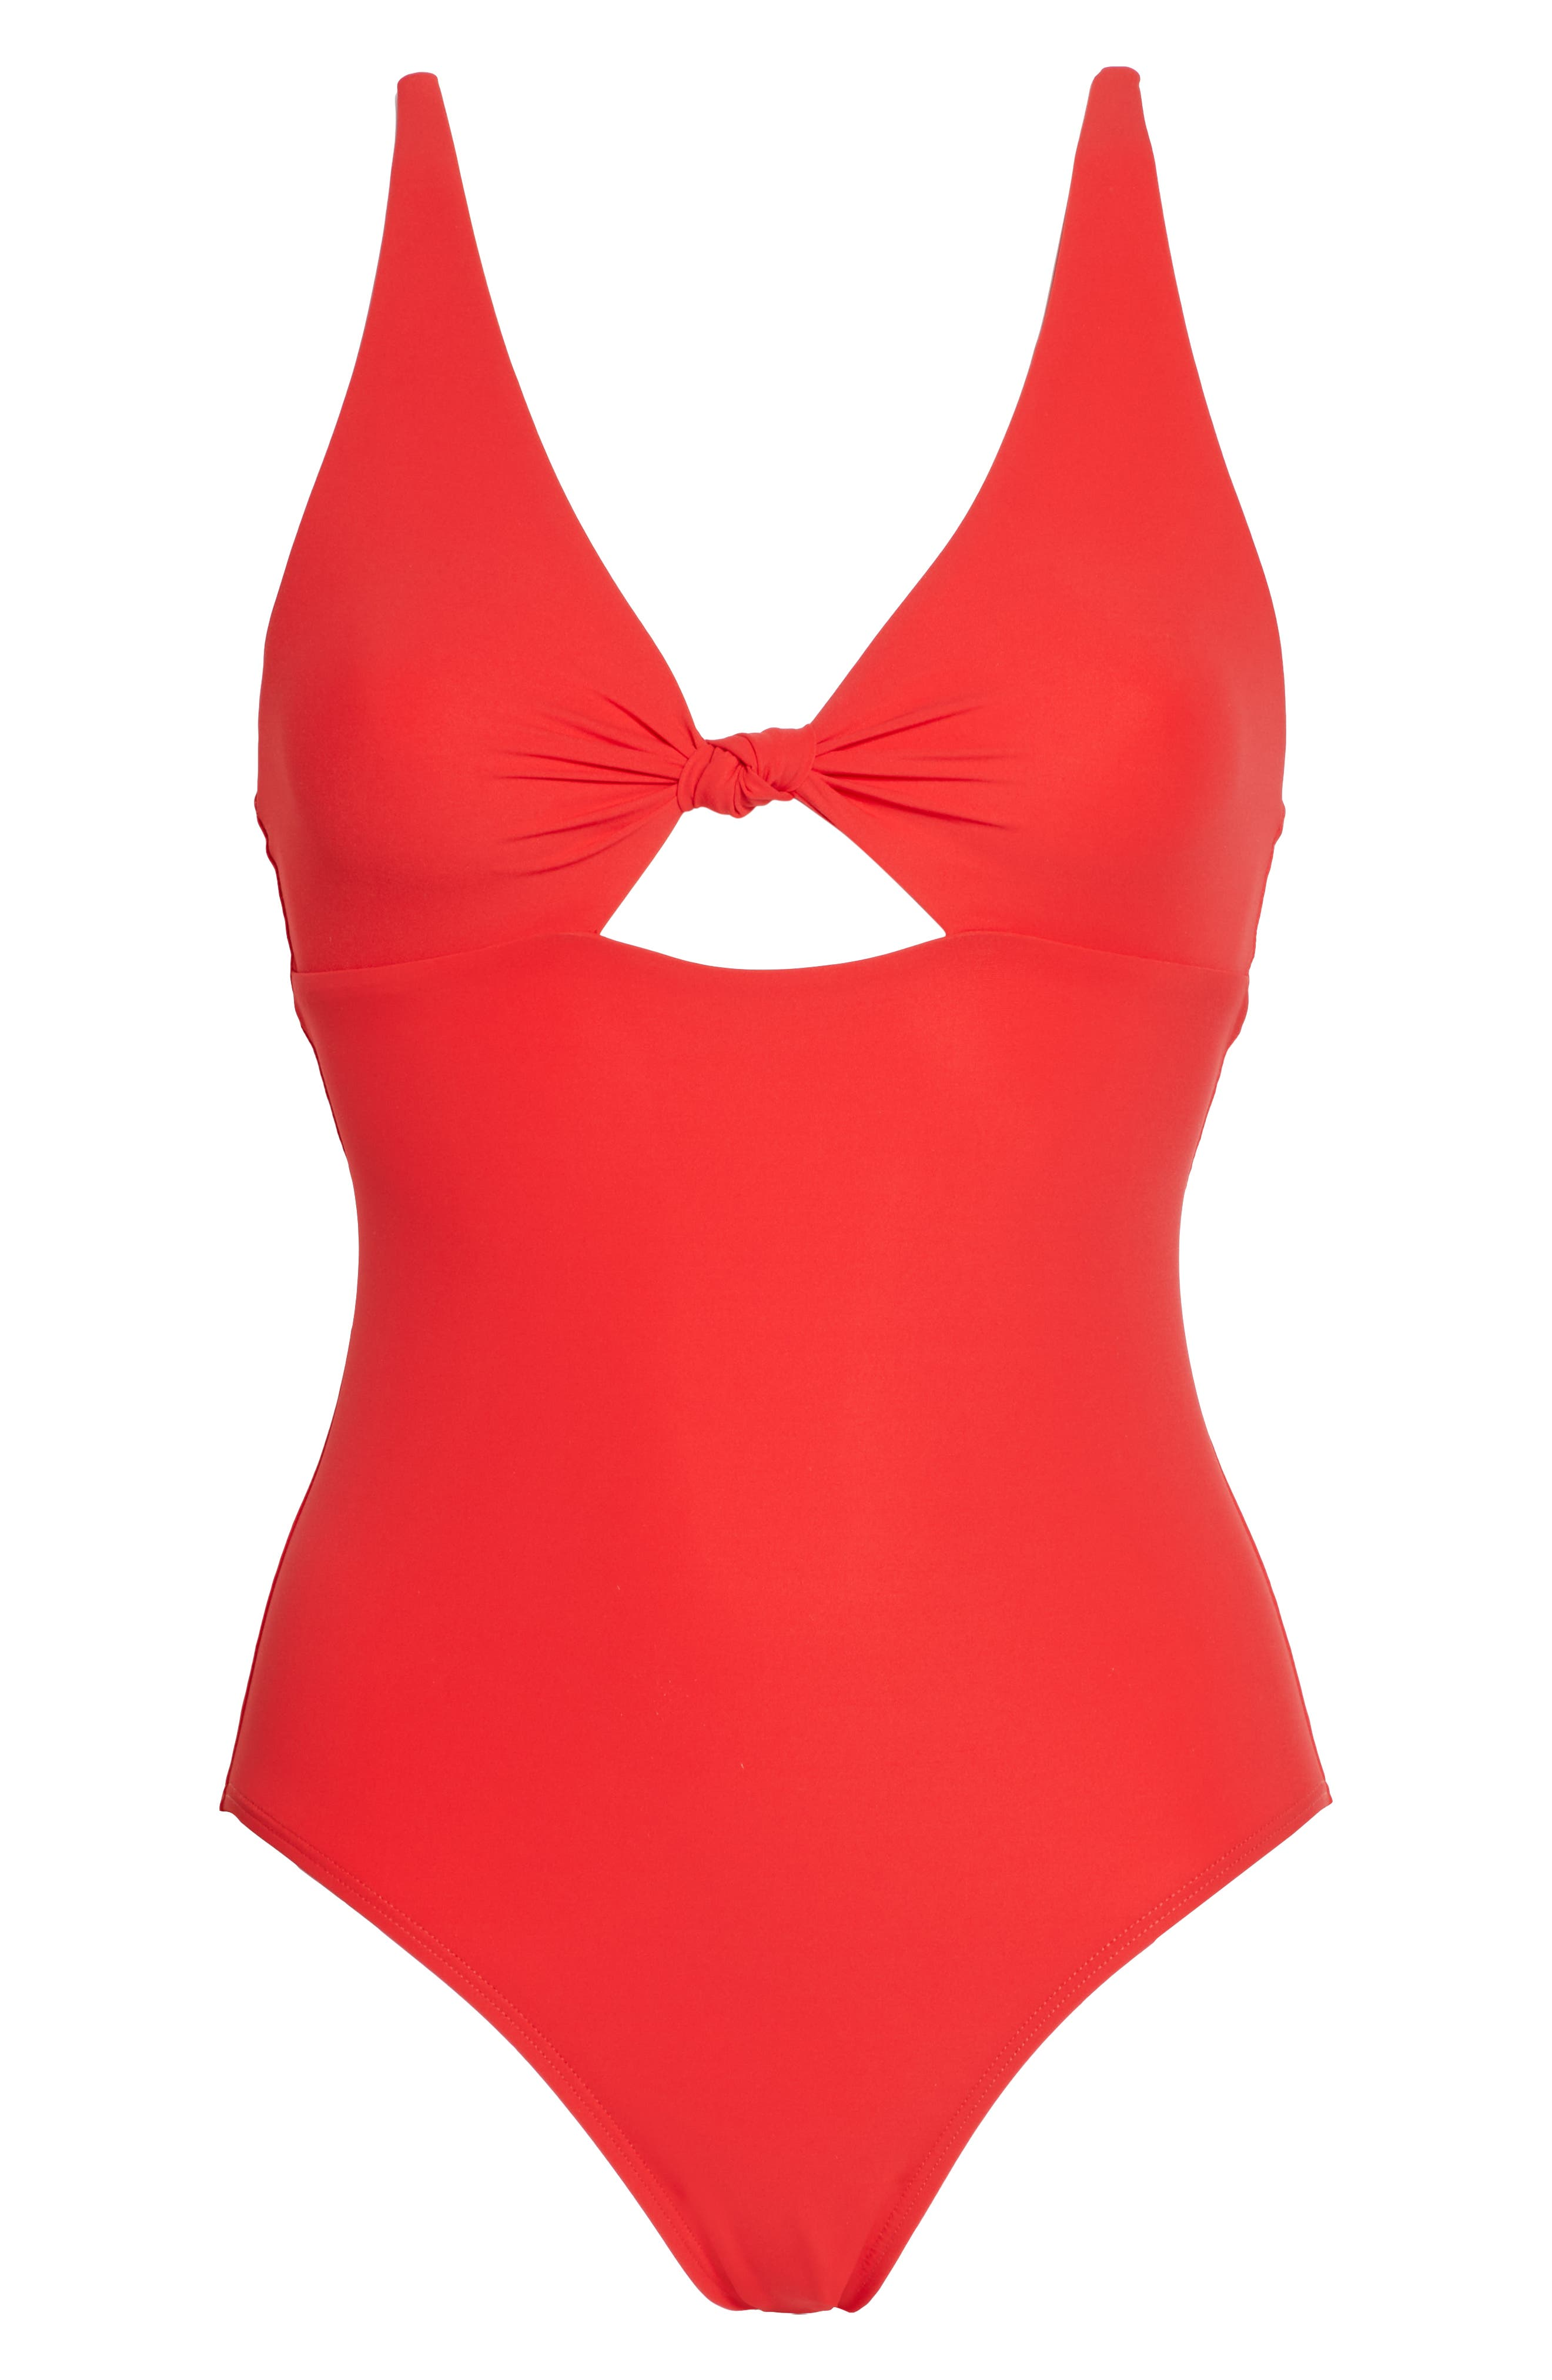 TORY BURCH, Palma One-Piece Swimsuit, Alternate thumbnail 7, color, POPPY RED